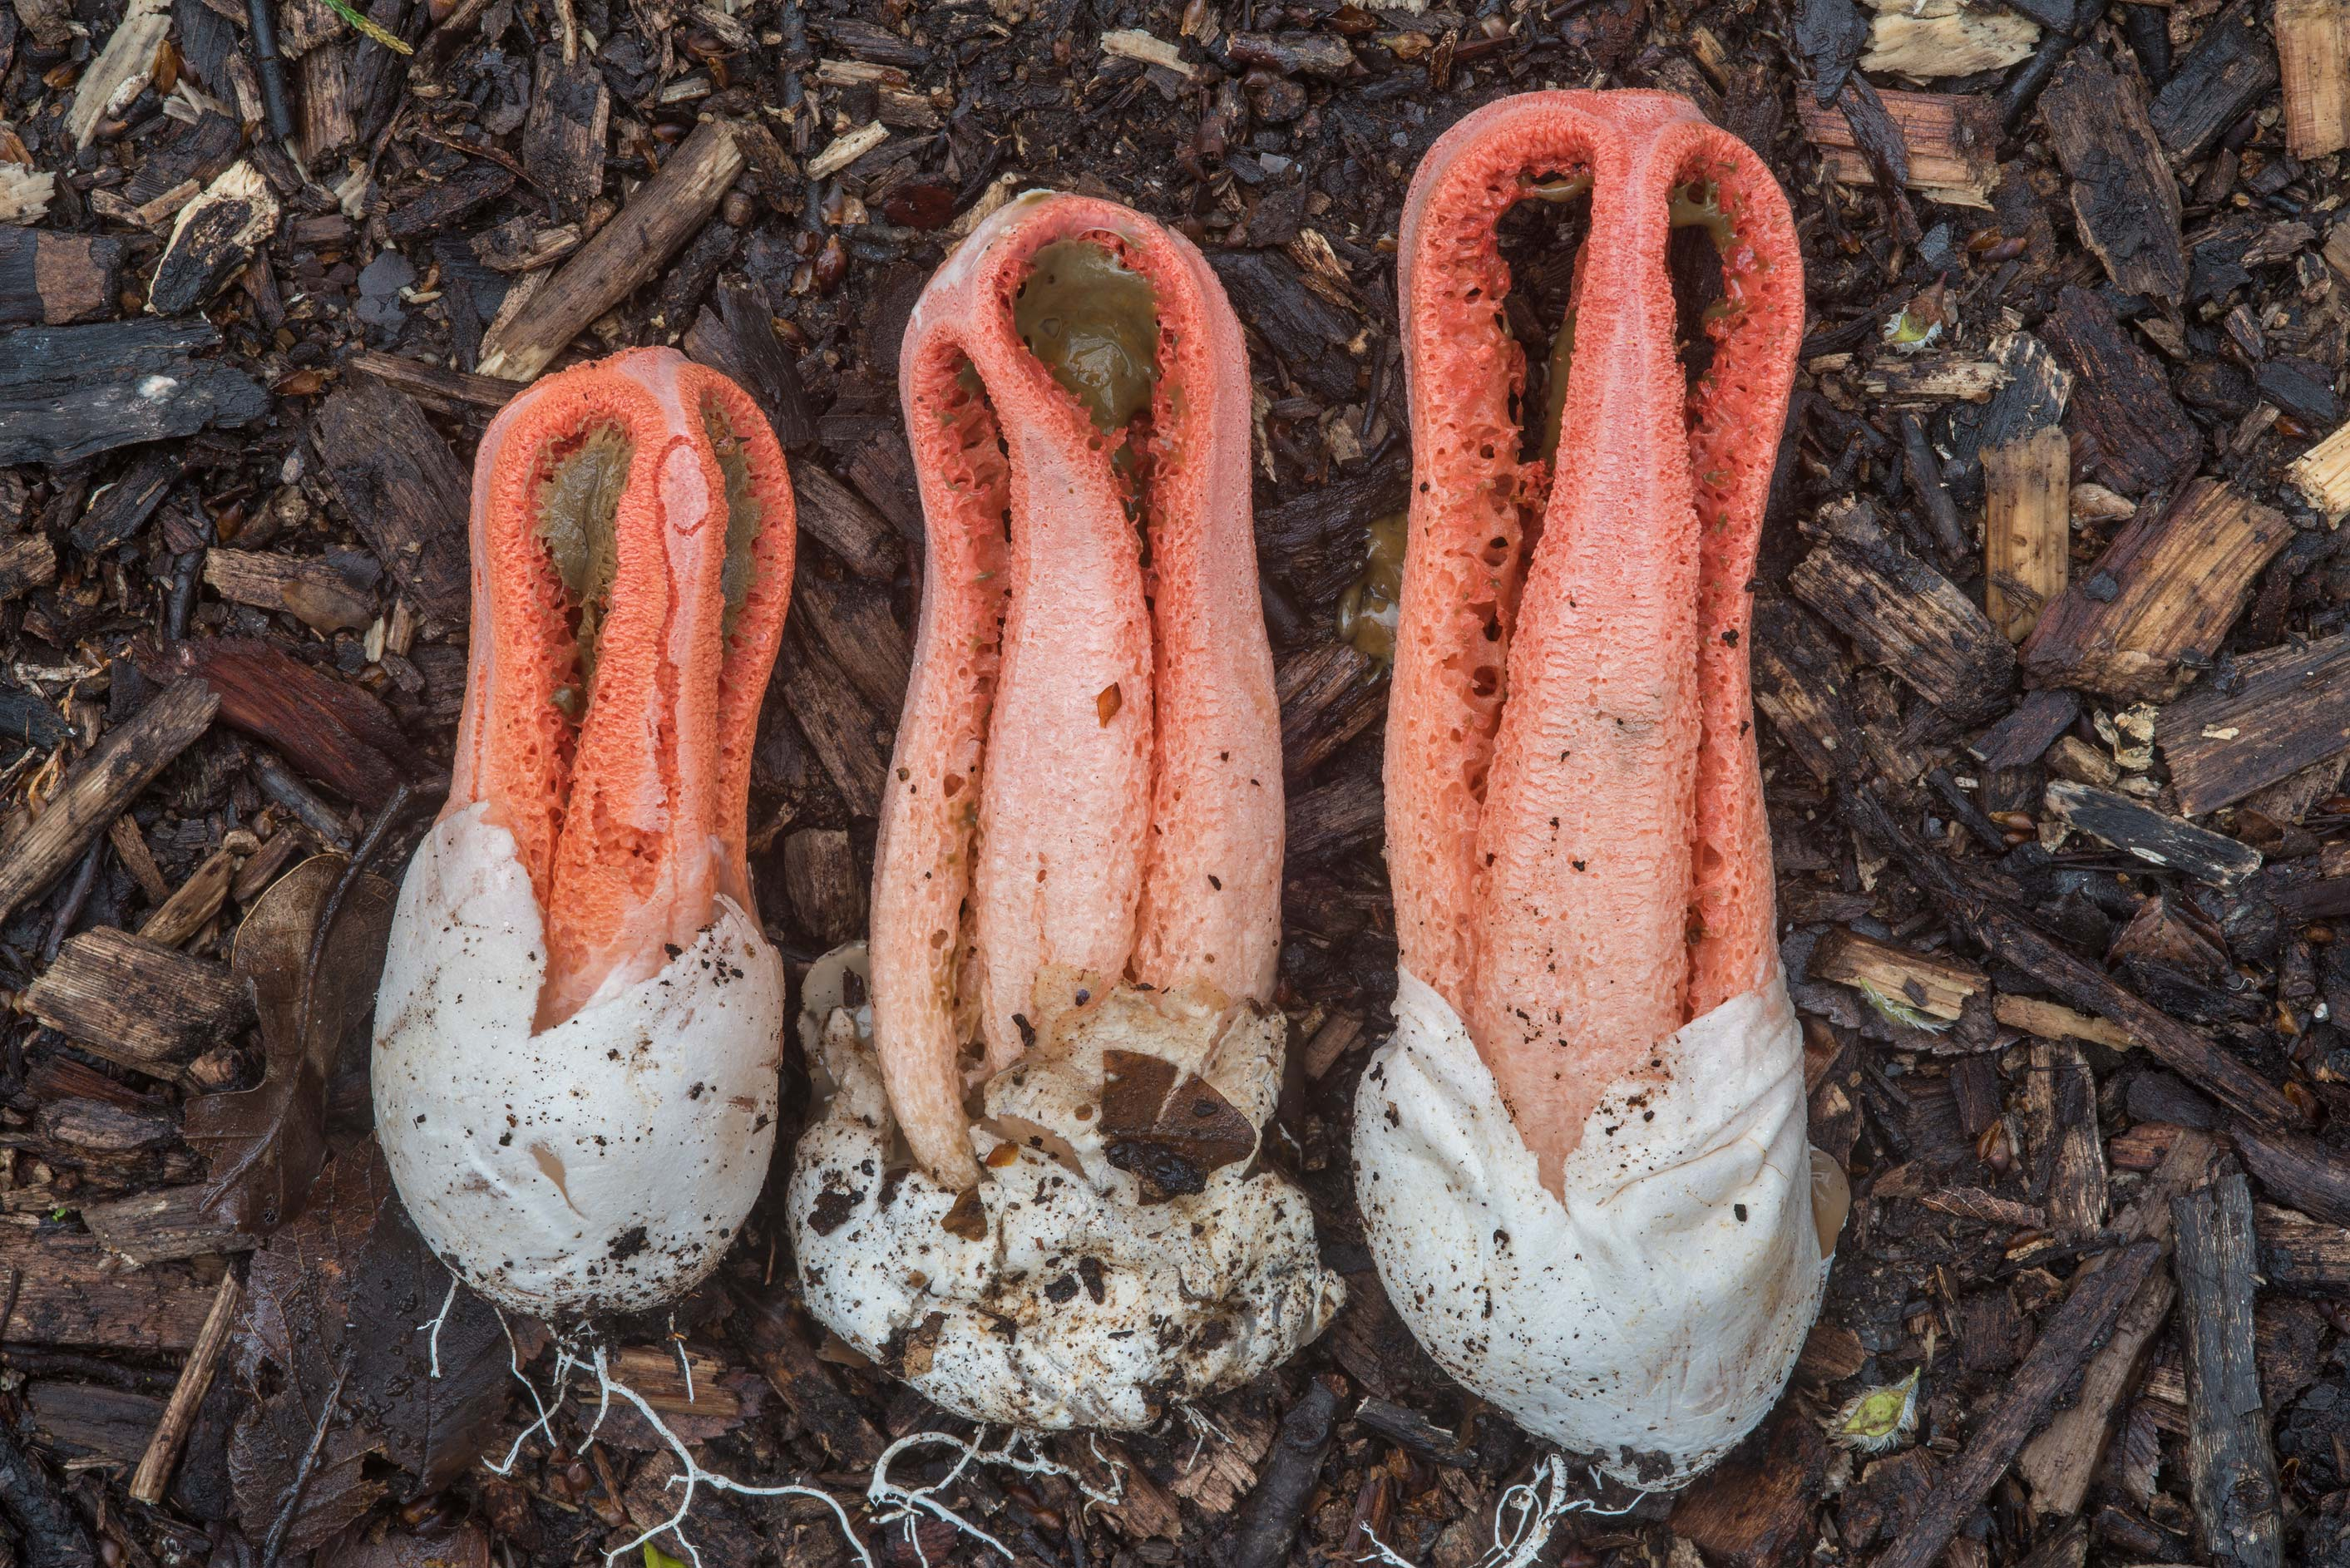 Columned Stinkhorn mushrooms (Linderia columnata...Bee Creek Park. College Station, Texas